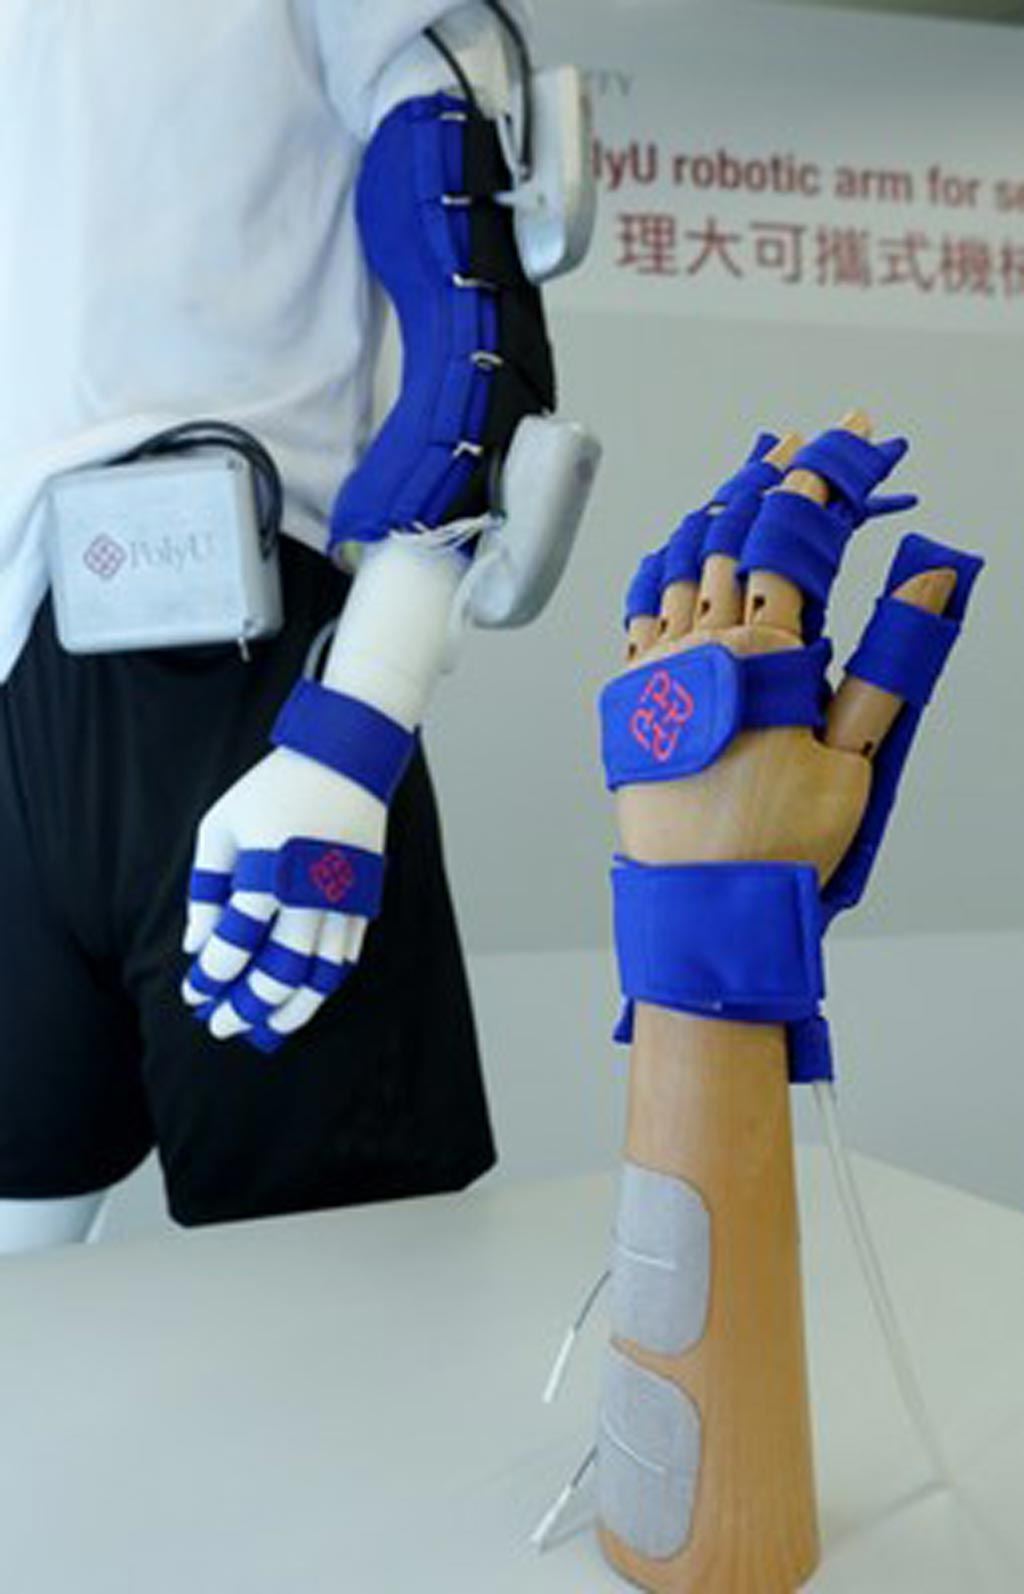 Image: A rehabilitation device combines an exo-skeleton and soft robotics (Photo courtesy of PolyU).